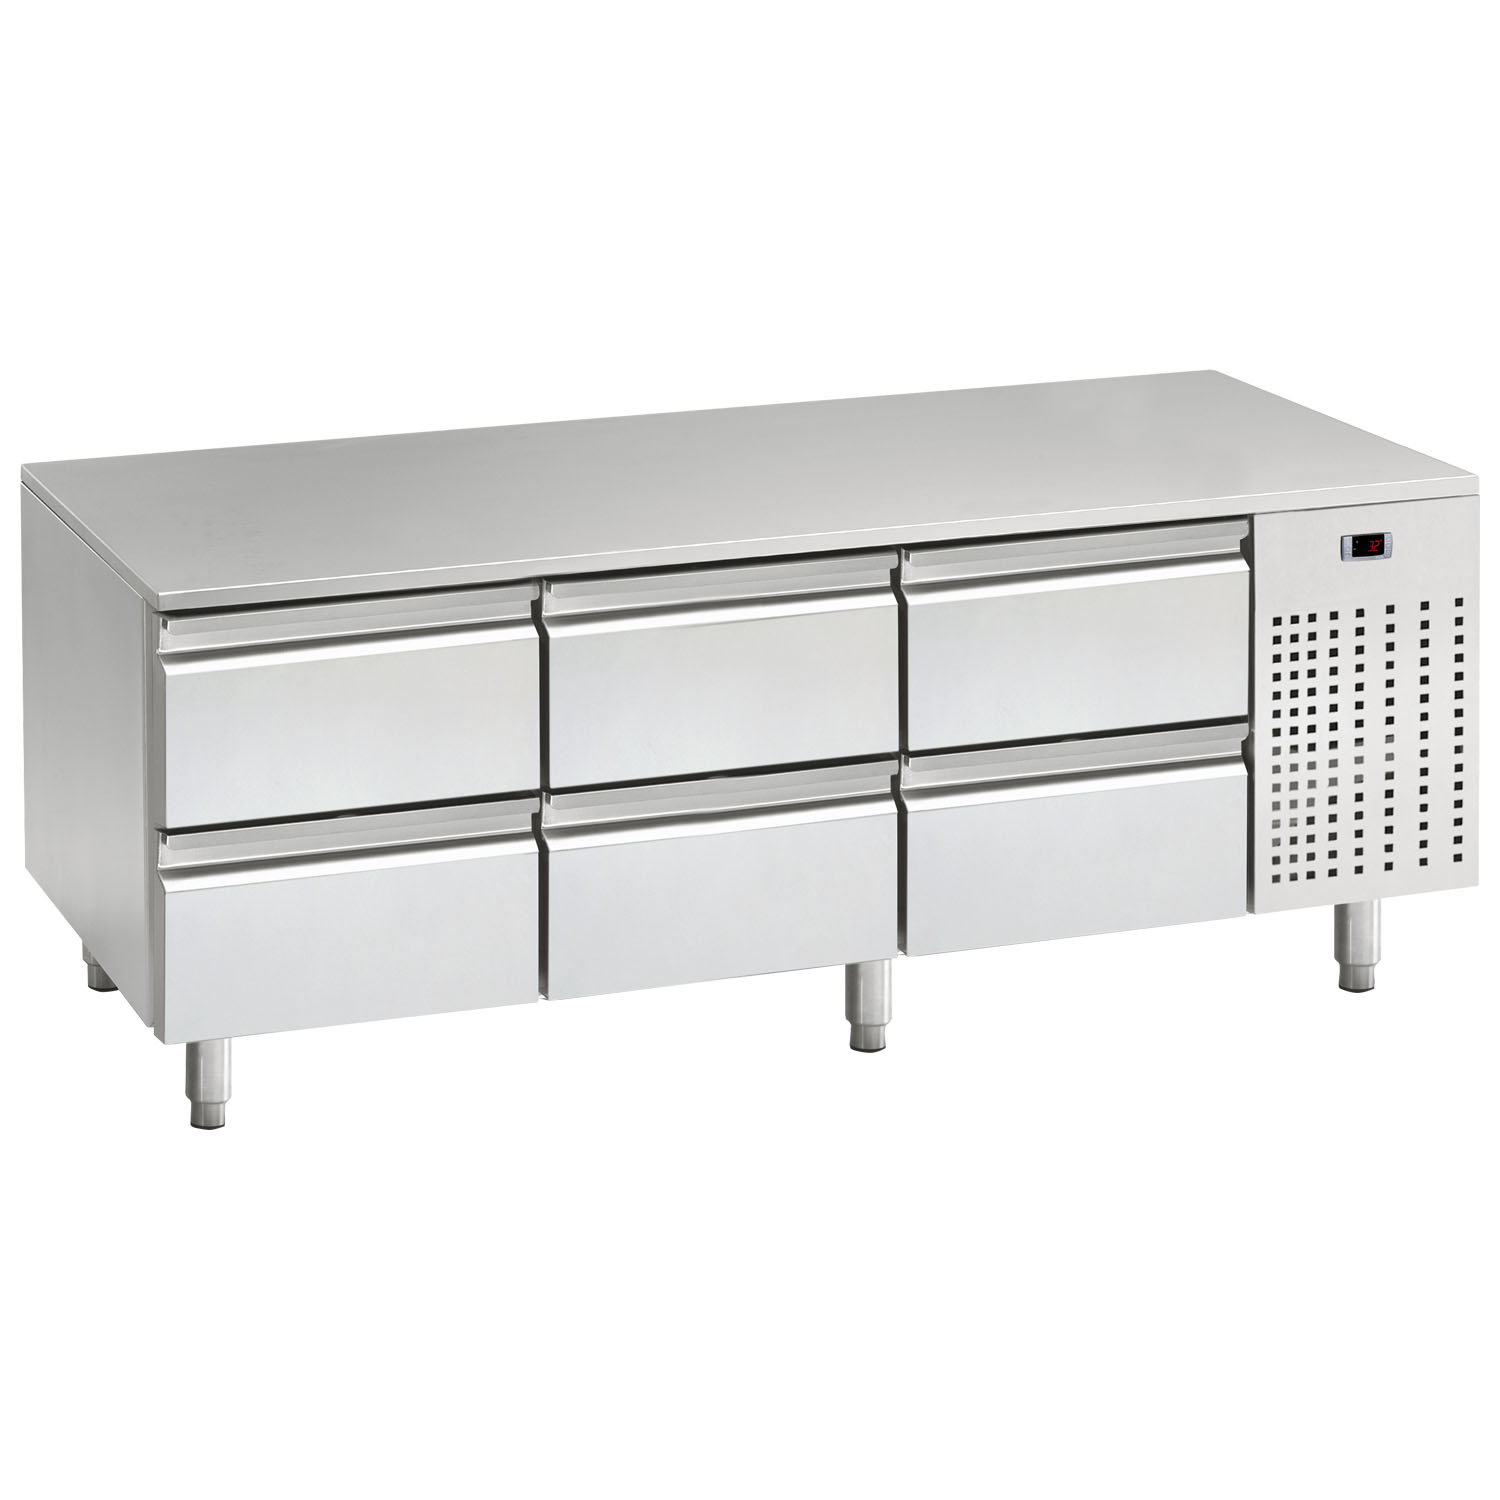 Mercatus U1-1600 Low Height Gastronorm Stainless Steel Counter Chiller